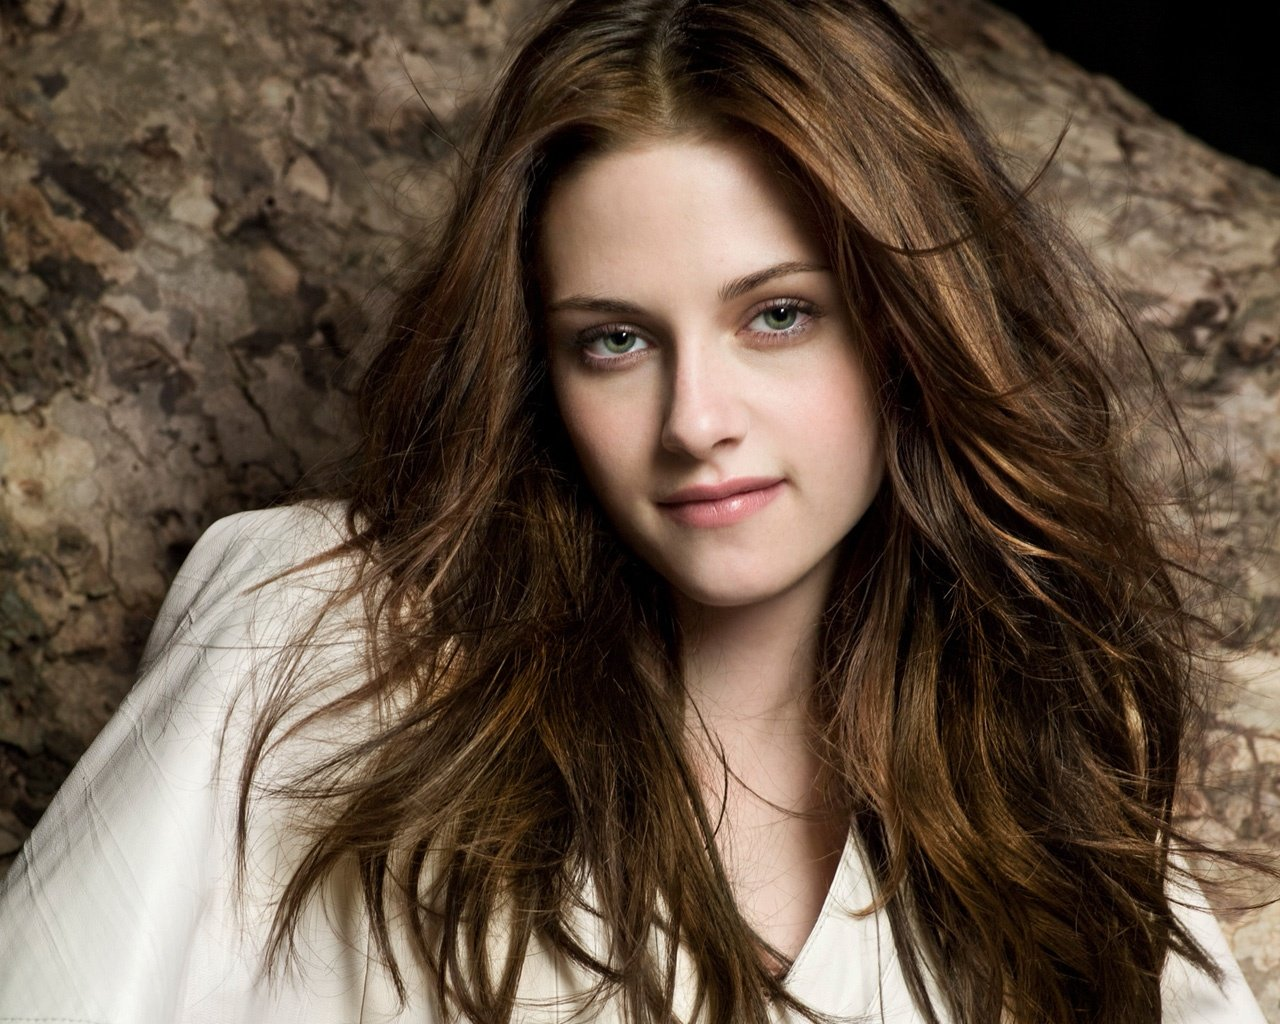 Awesome Kristen Stewart free wallpaper ID:114615 for hd 1280x1024 computer